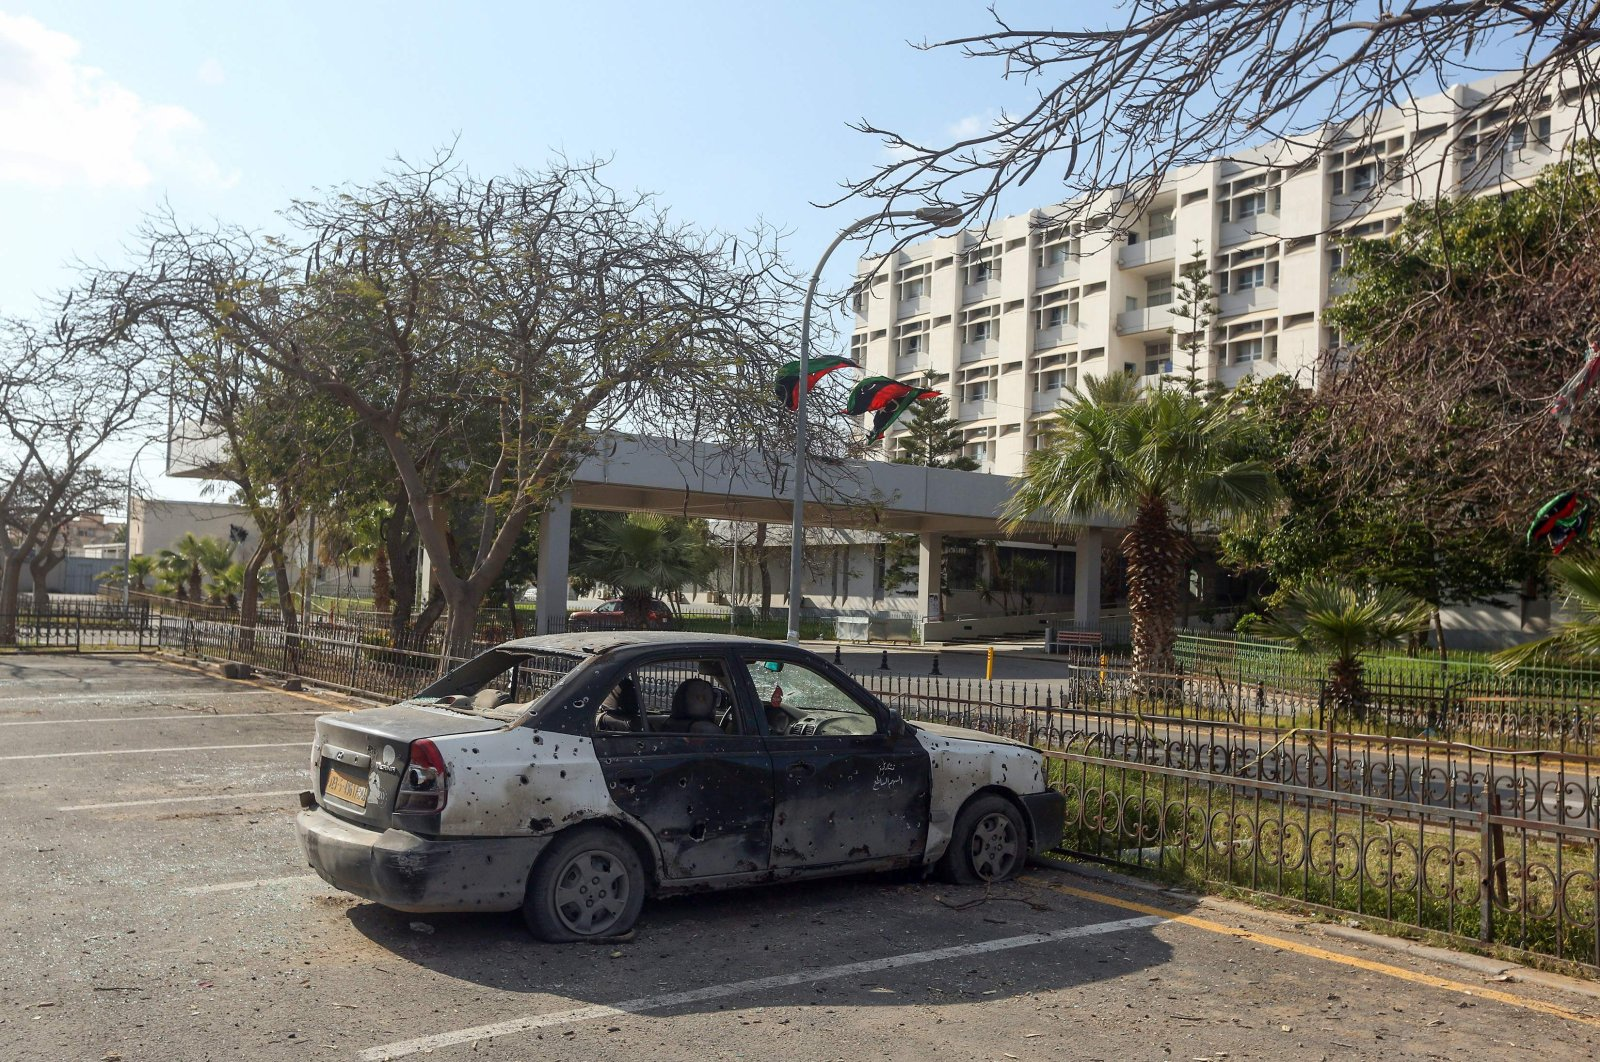 A burnt-out car is seen at the parking lot of Khadra General Hospital, which is dedicated to treating people infected with the coronavirus, after it was targeted by forces loyal to Khalifa Haftar, in the Libyan capital Tripoli, April 8, 2020. (AFP Photo)